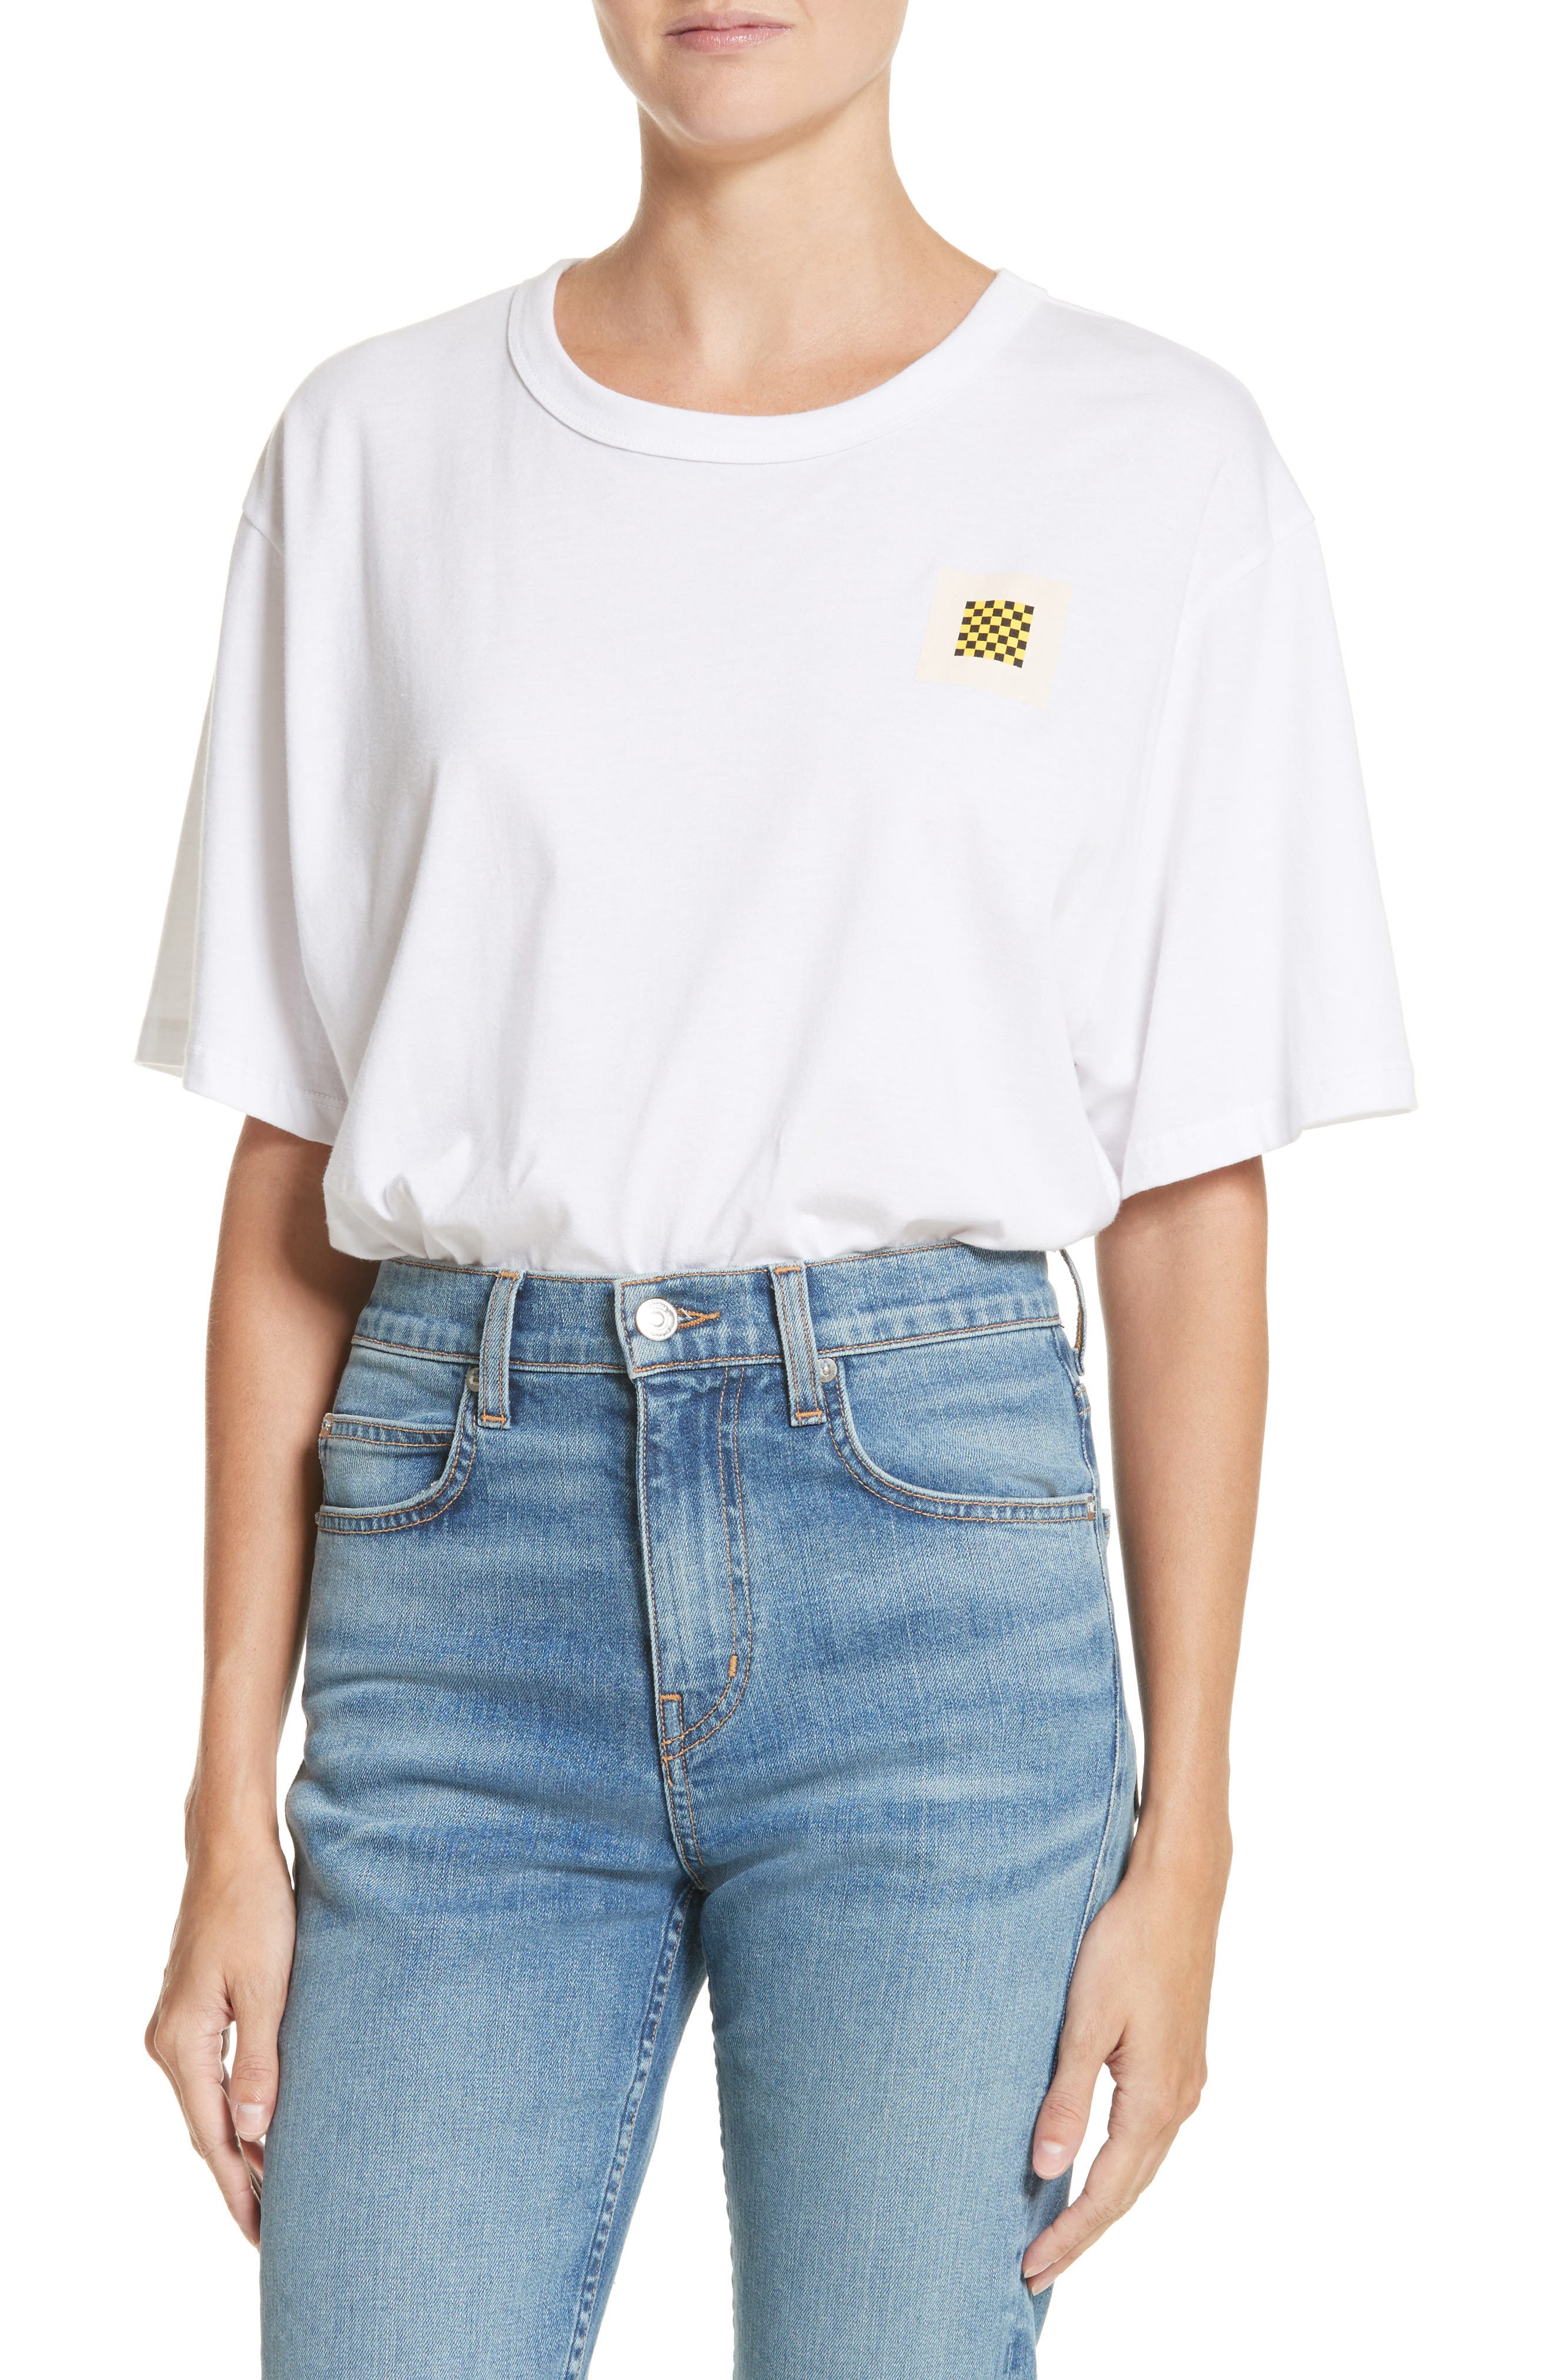 PSWL Graphic Jersey Tee,                             Main thumbnail 1, color,                             White